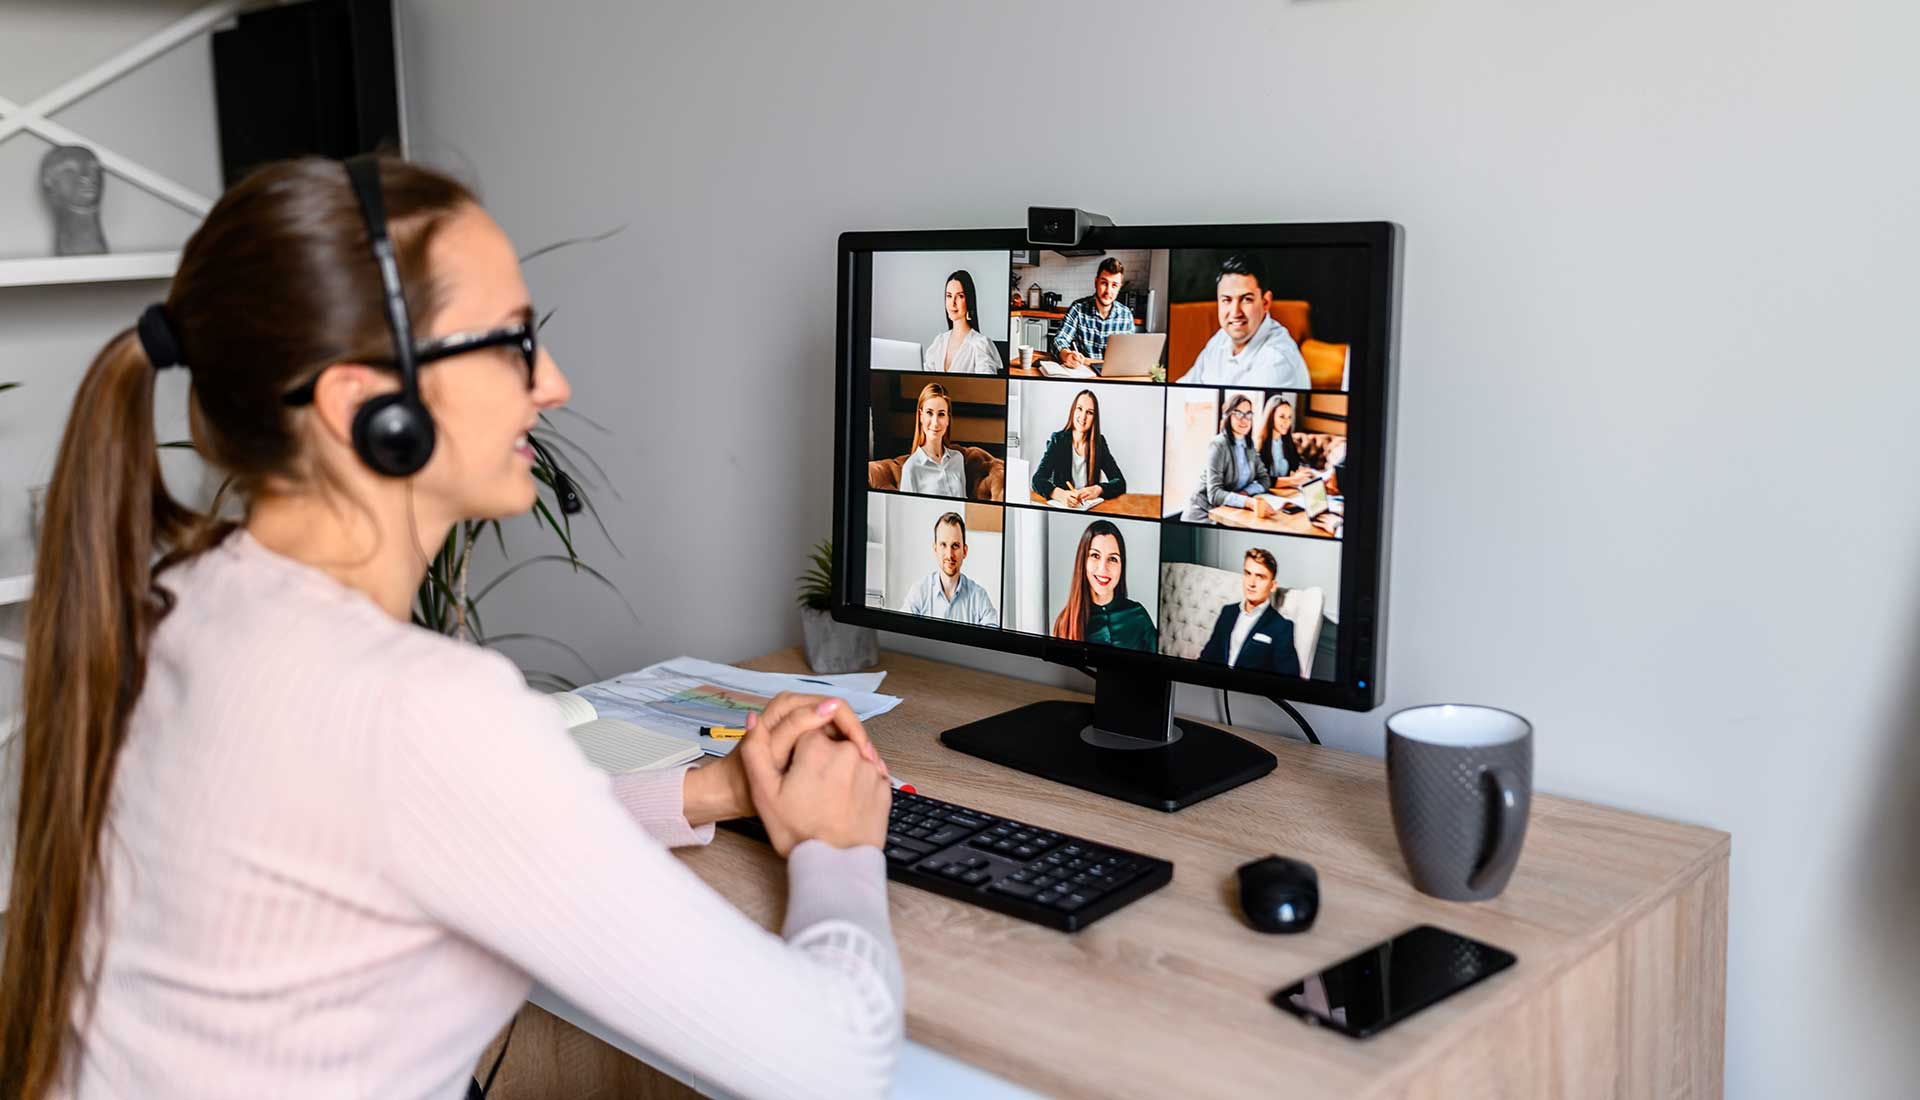 cabled home network seamless video conferencing in zoom, teams and whatsapp